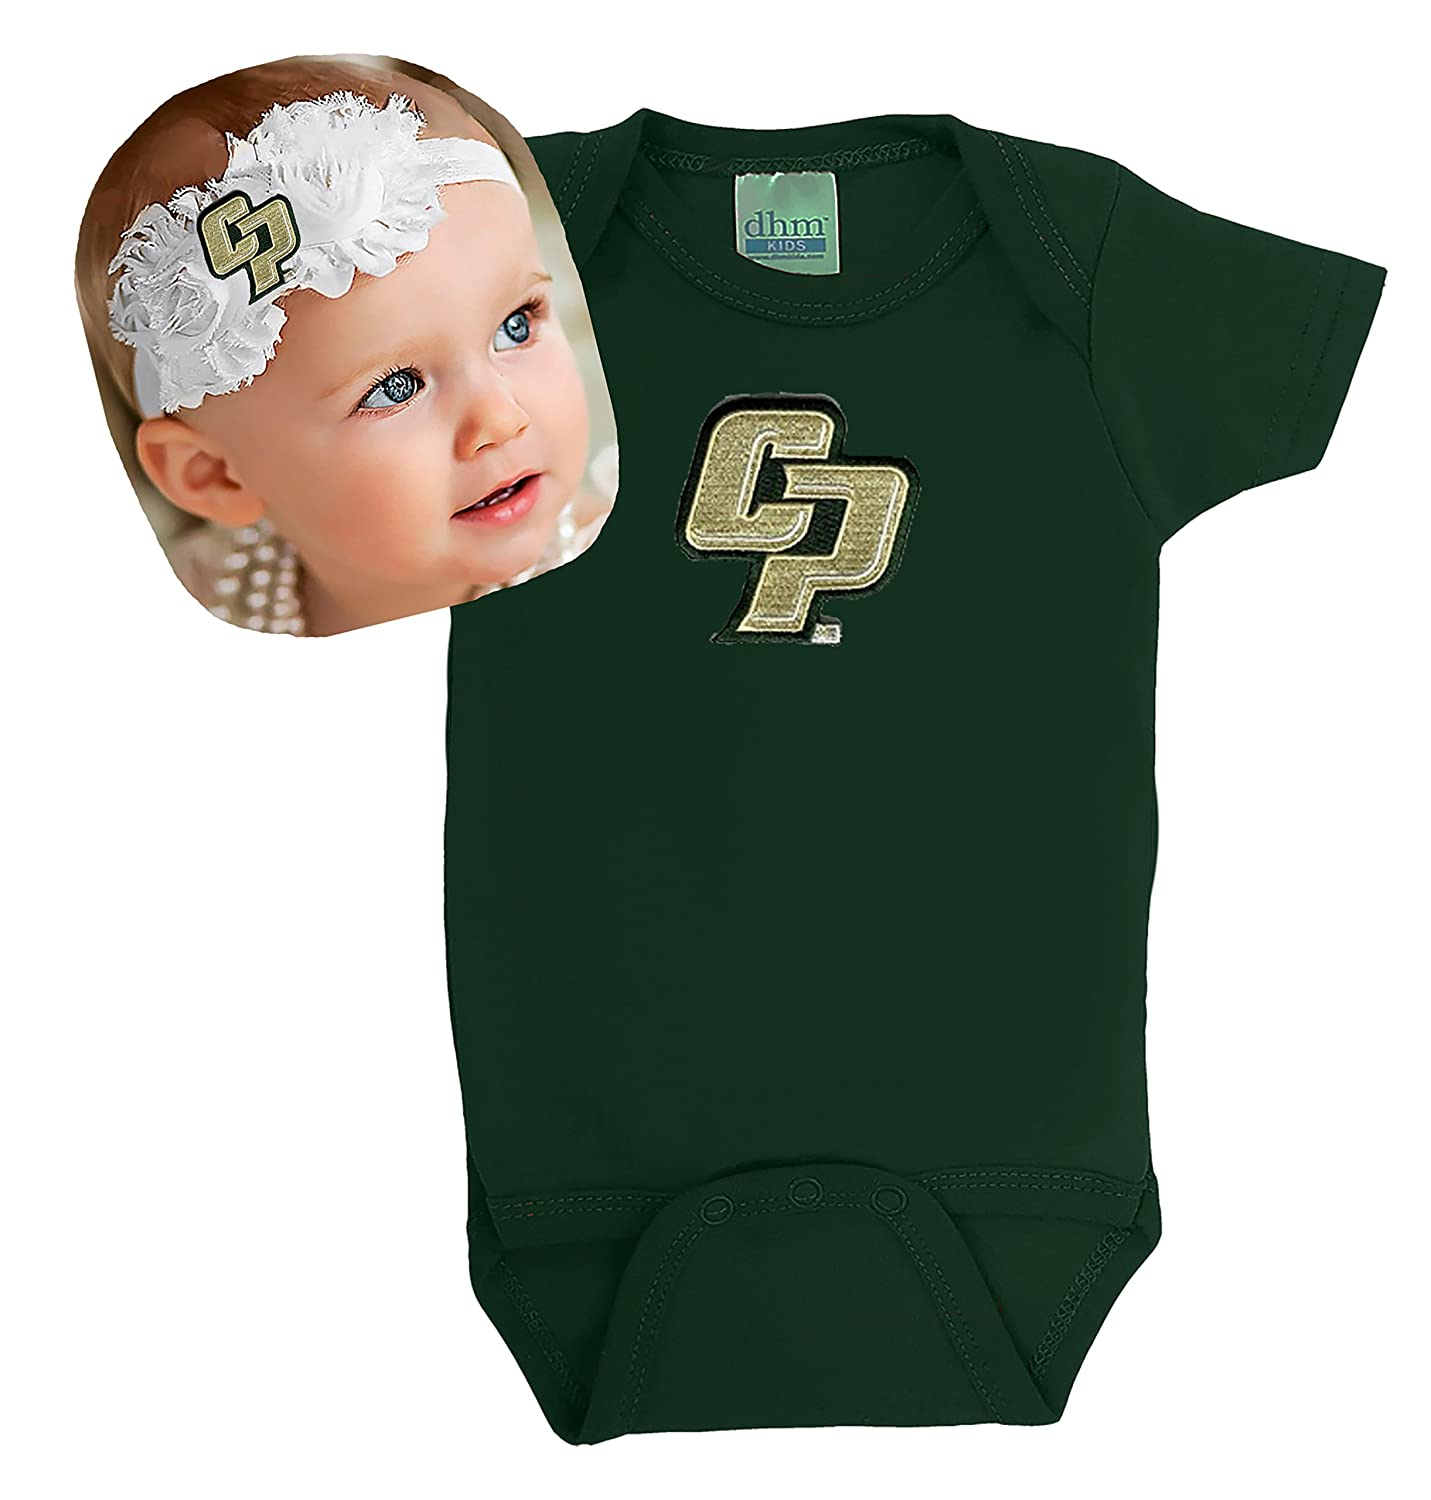 Cal Poly Mustangs Baby Onesie And Shabby弓ヘッドバンドギフトセット 6 Months  B017Q1T6GO